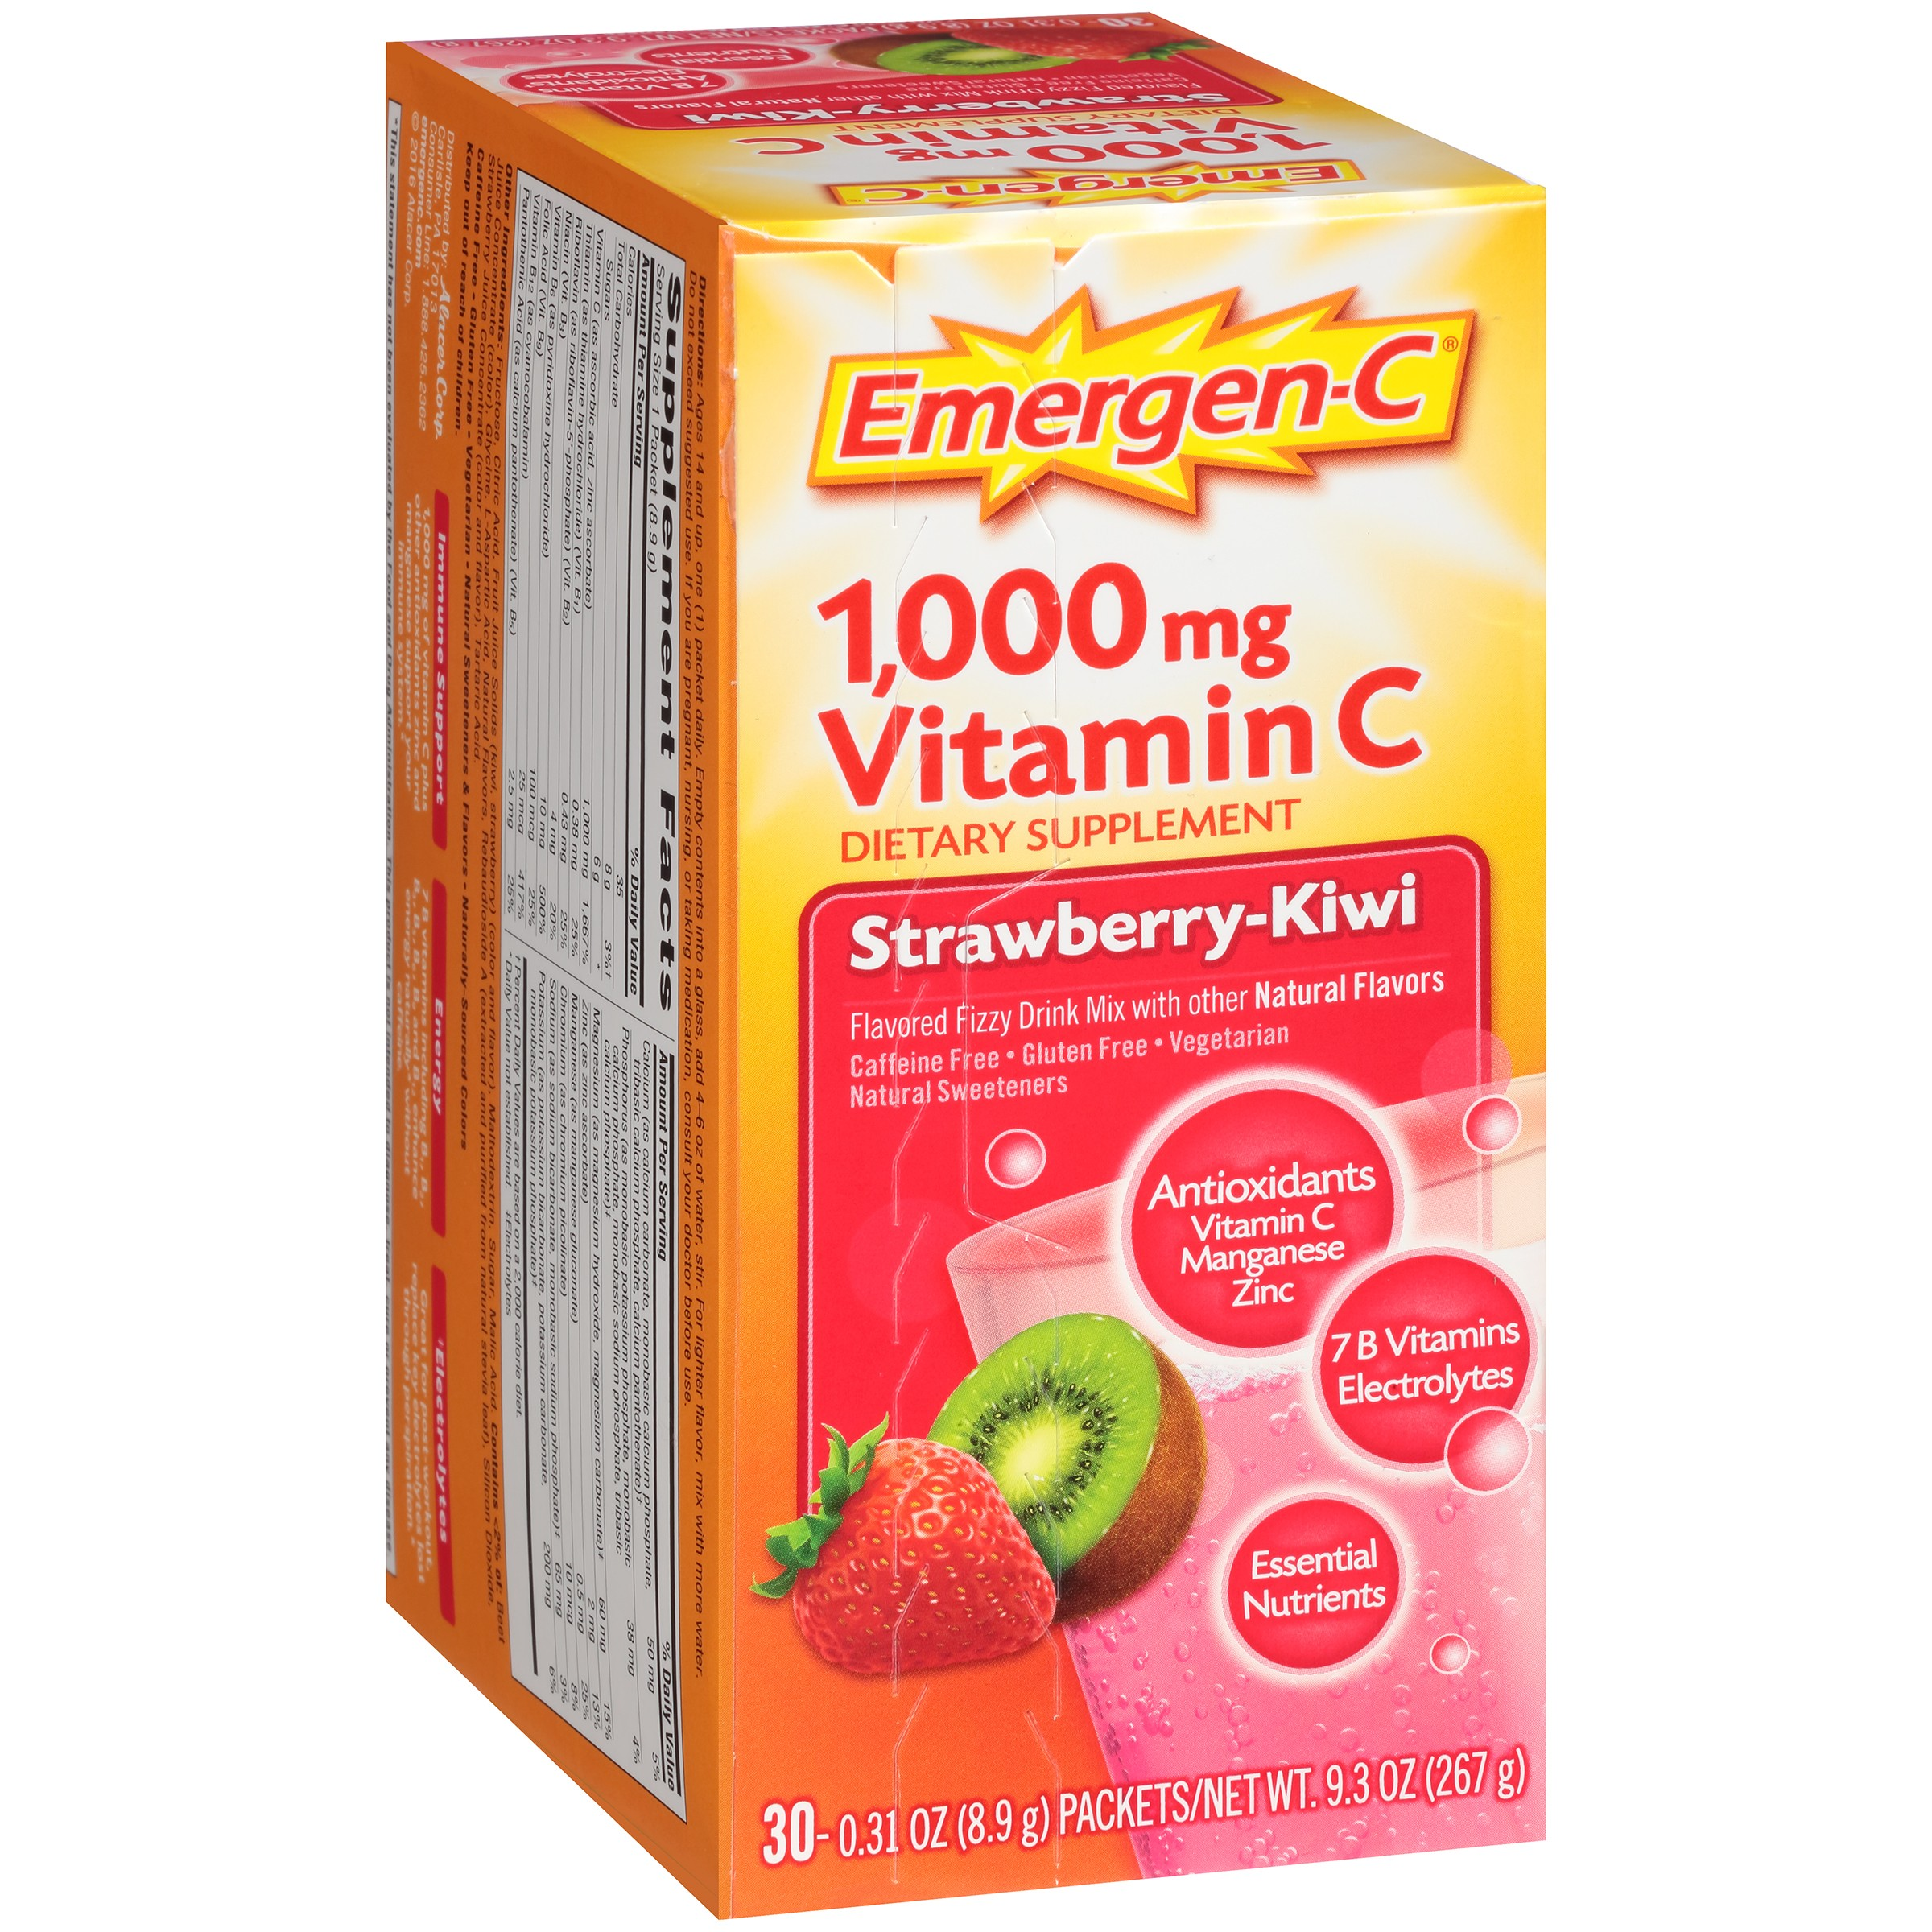 Emergen-C Drink Mix, Strawberry Kiwi, .31 Oz, 30 Packets, 1 Count